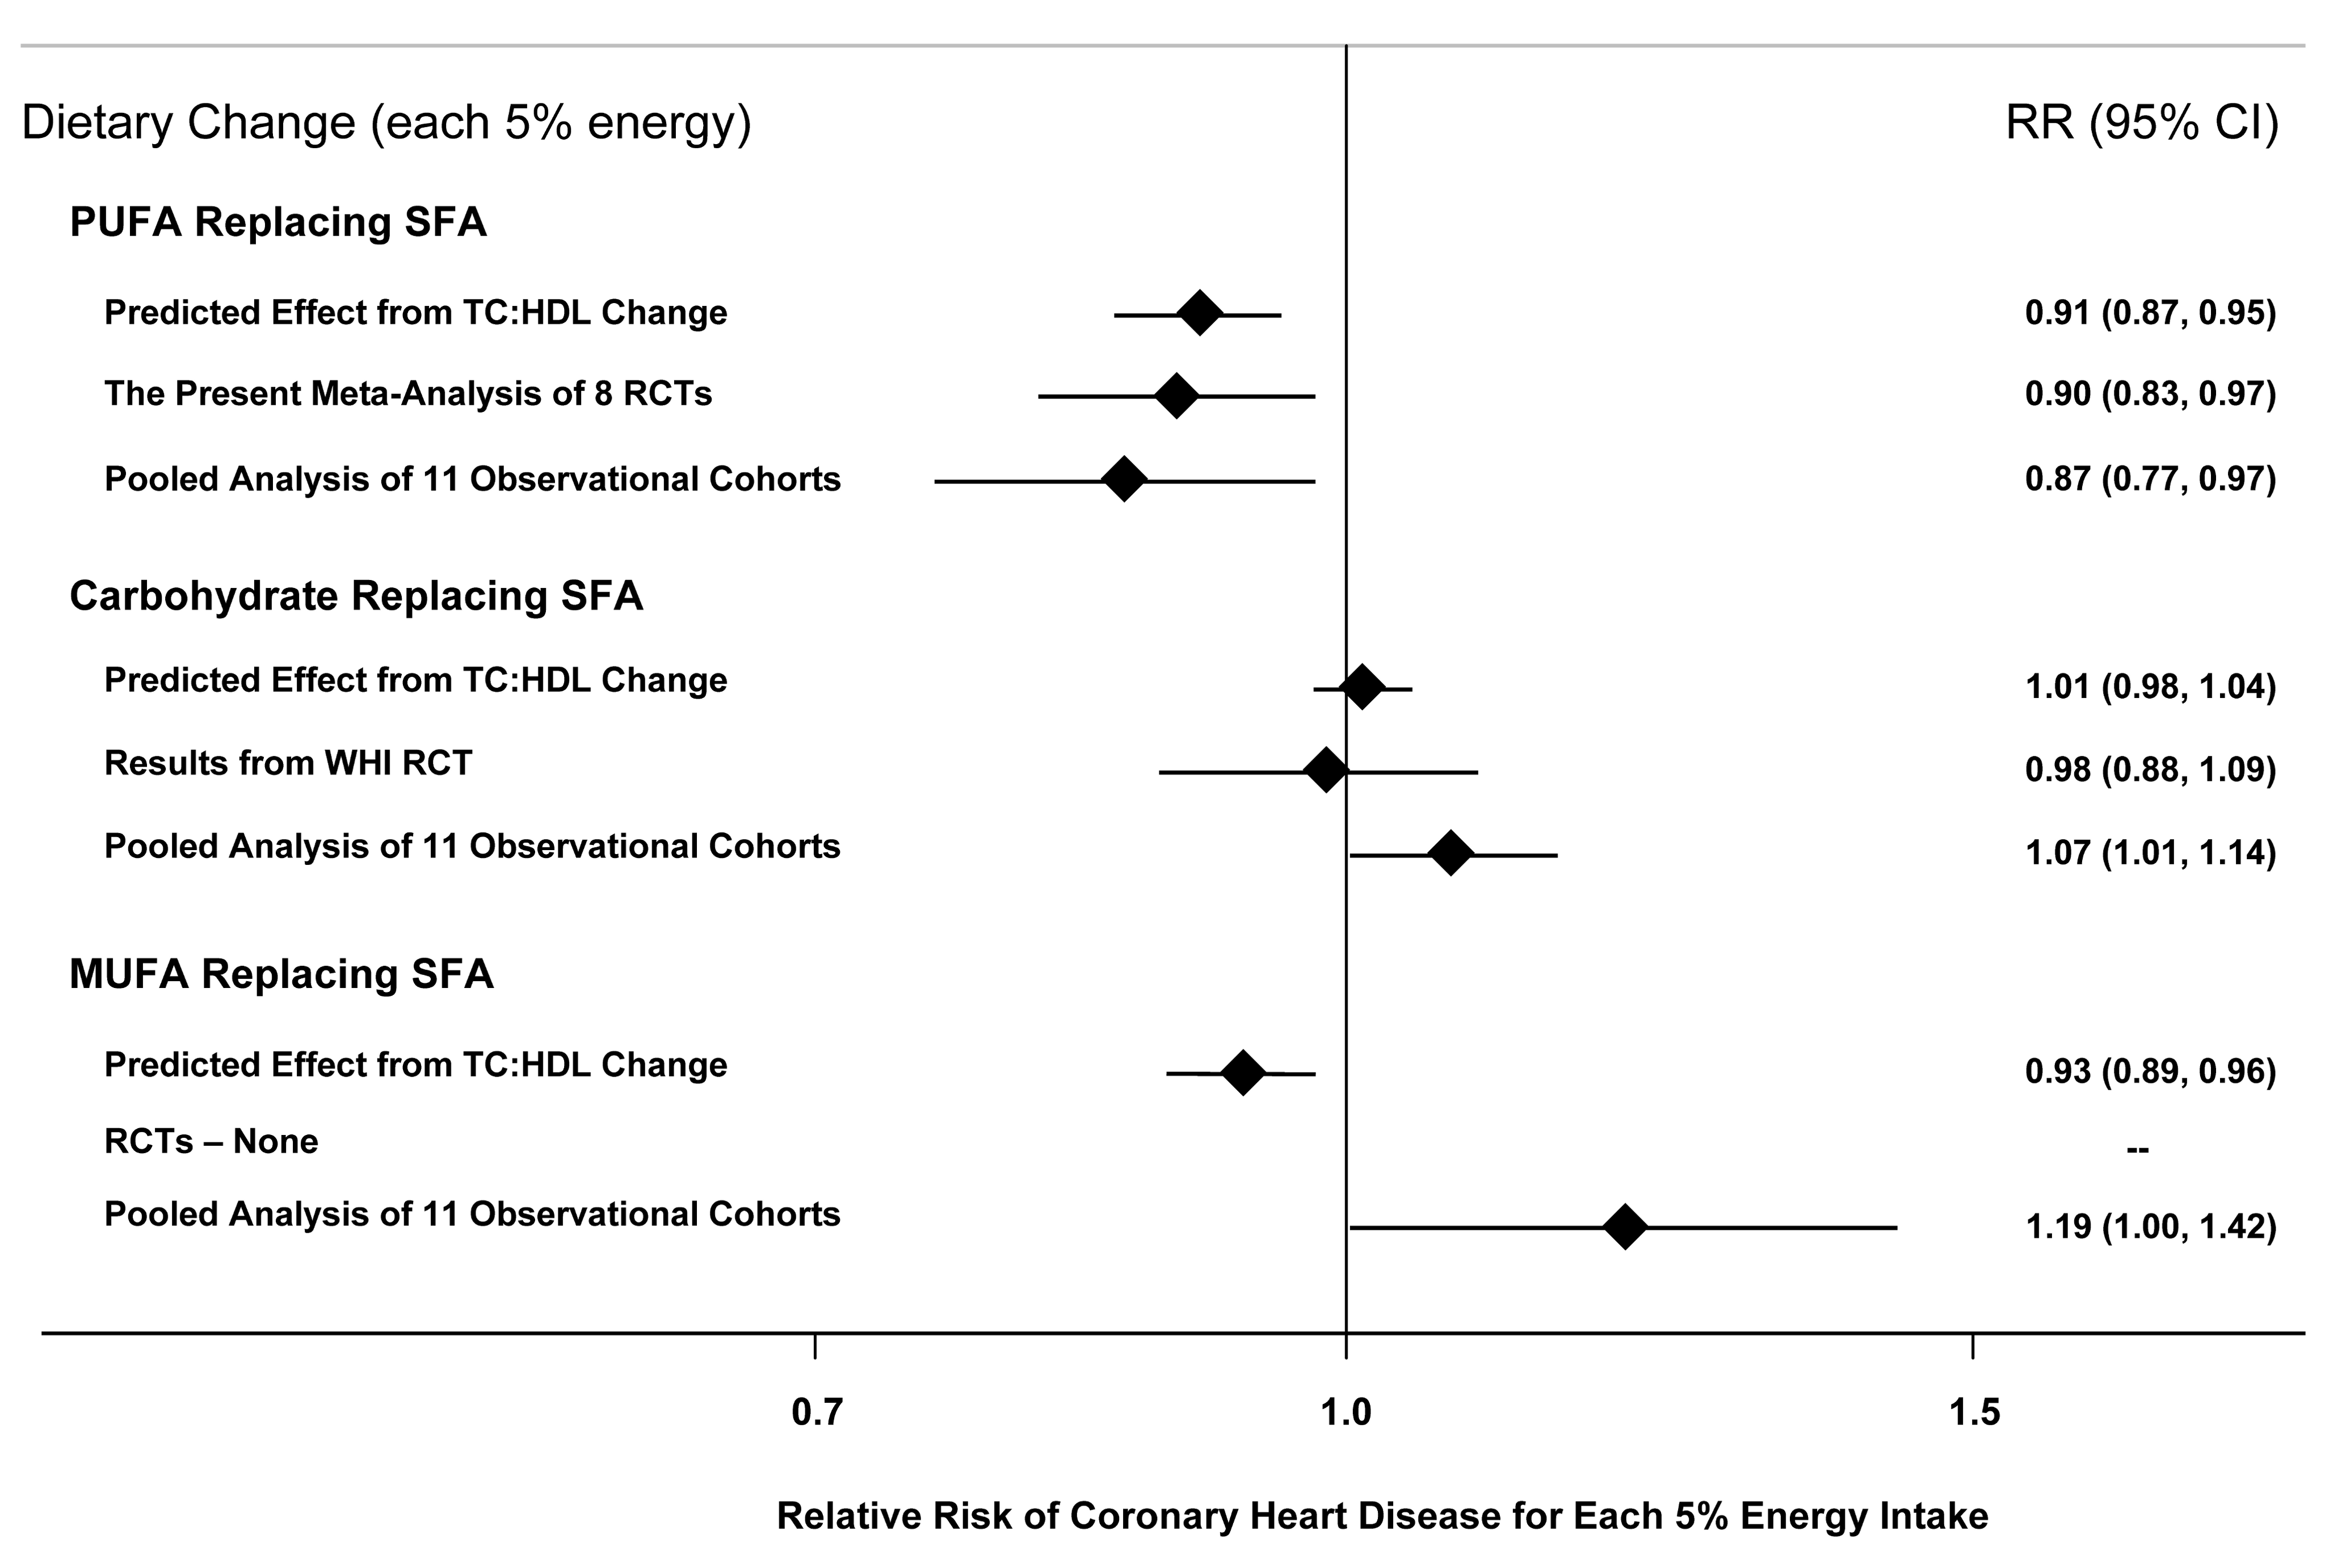 Effects on CHD risk of consuming PUFA, carbohydrate, or MUFA in place of SFA.